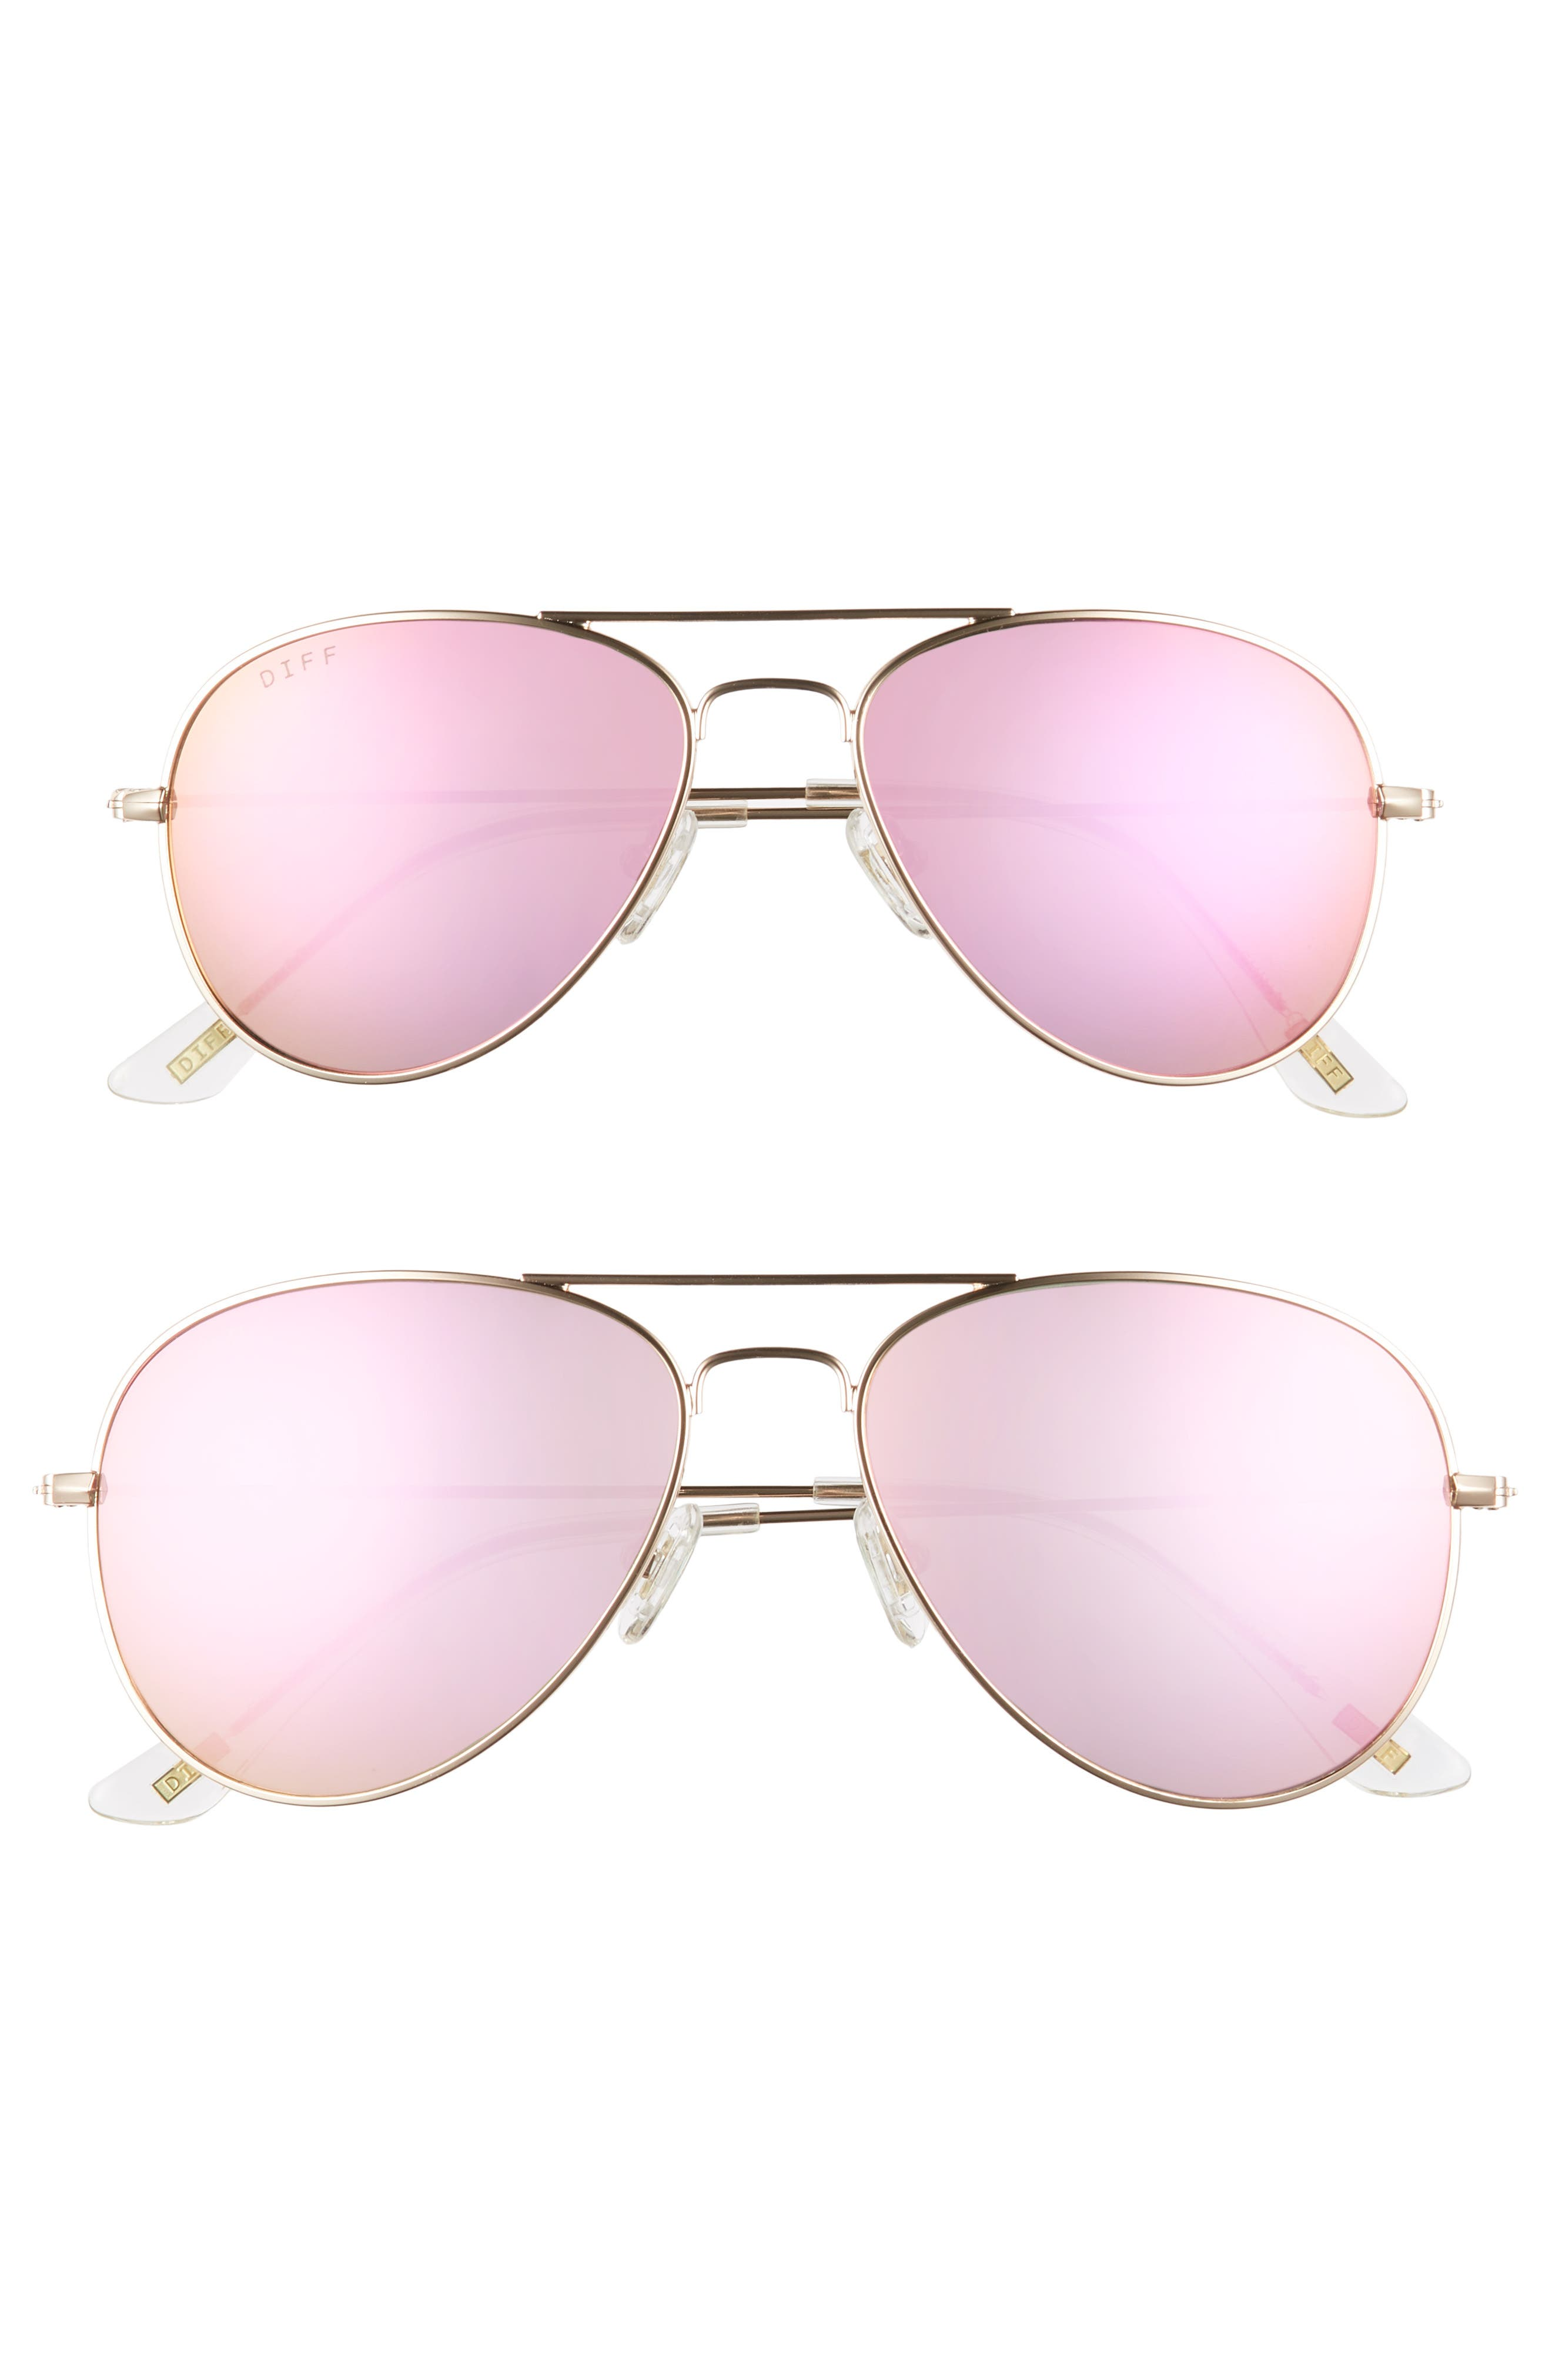 Mommy & Me Cruz 2-Pack Aviator Sunglasses,                         Main,                         color, Gold/ Pink